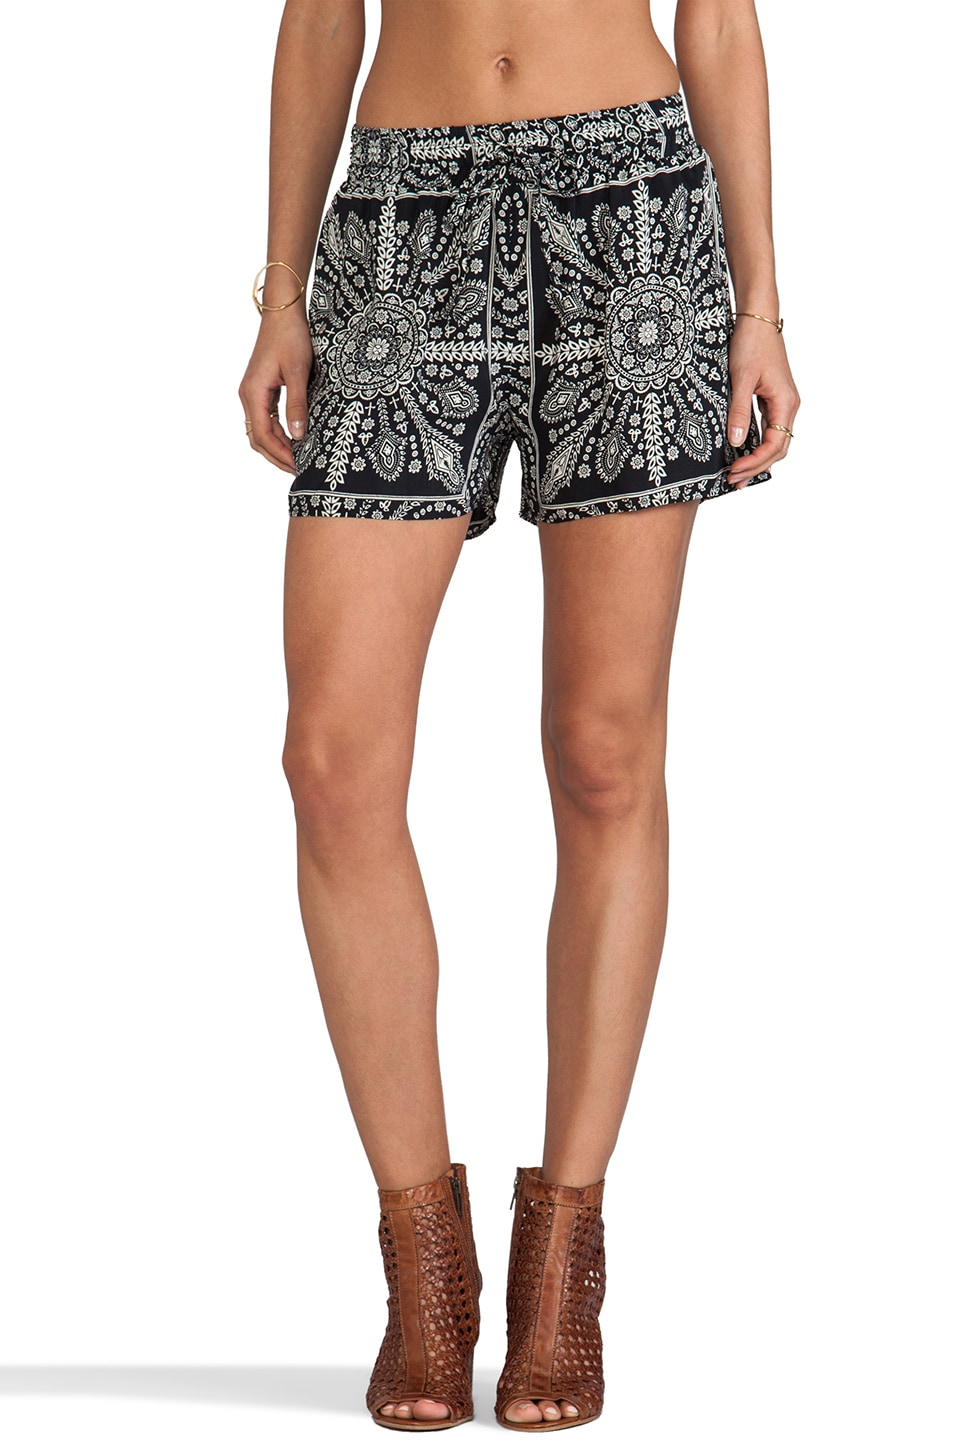 Tolani Gia Shorts in Black